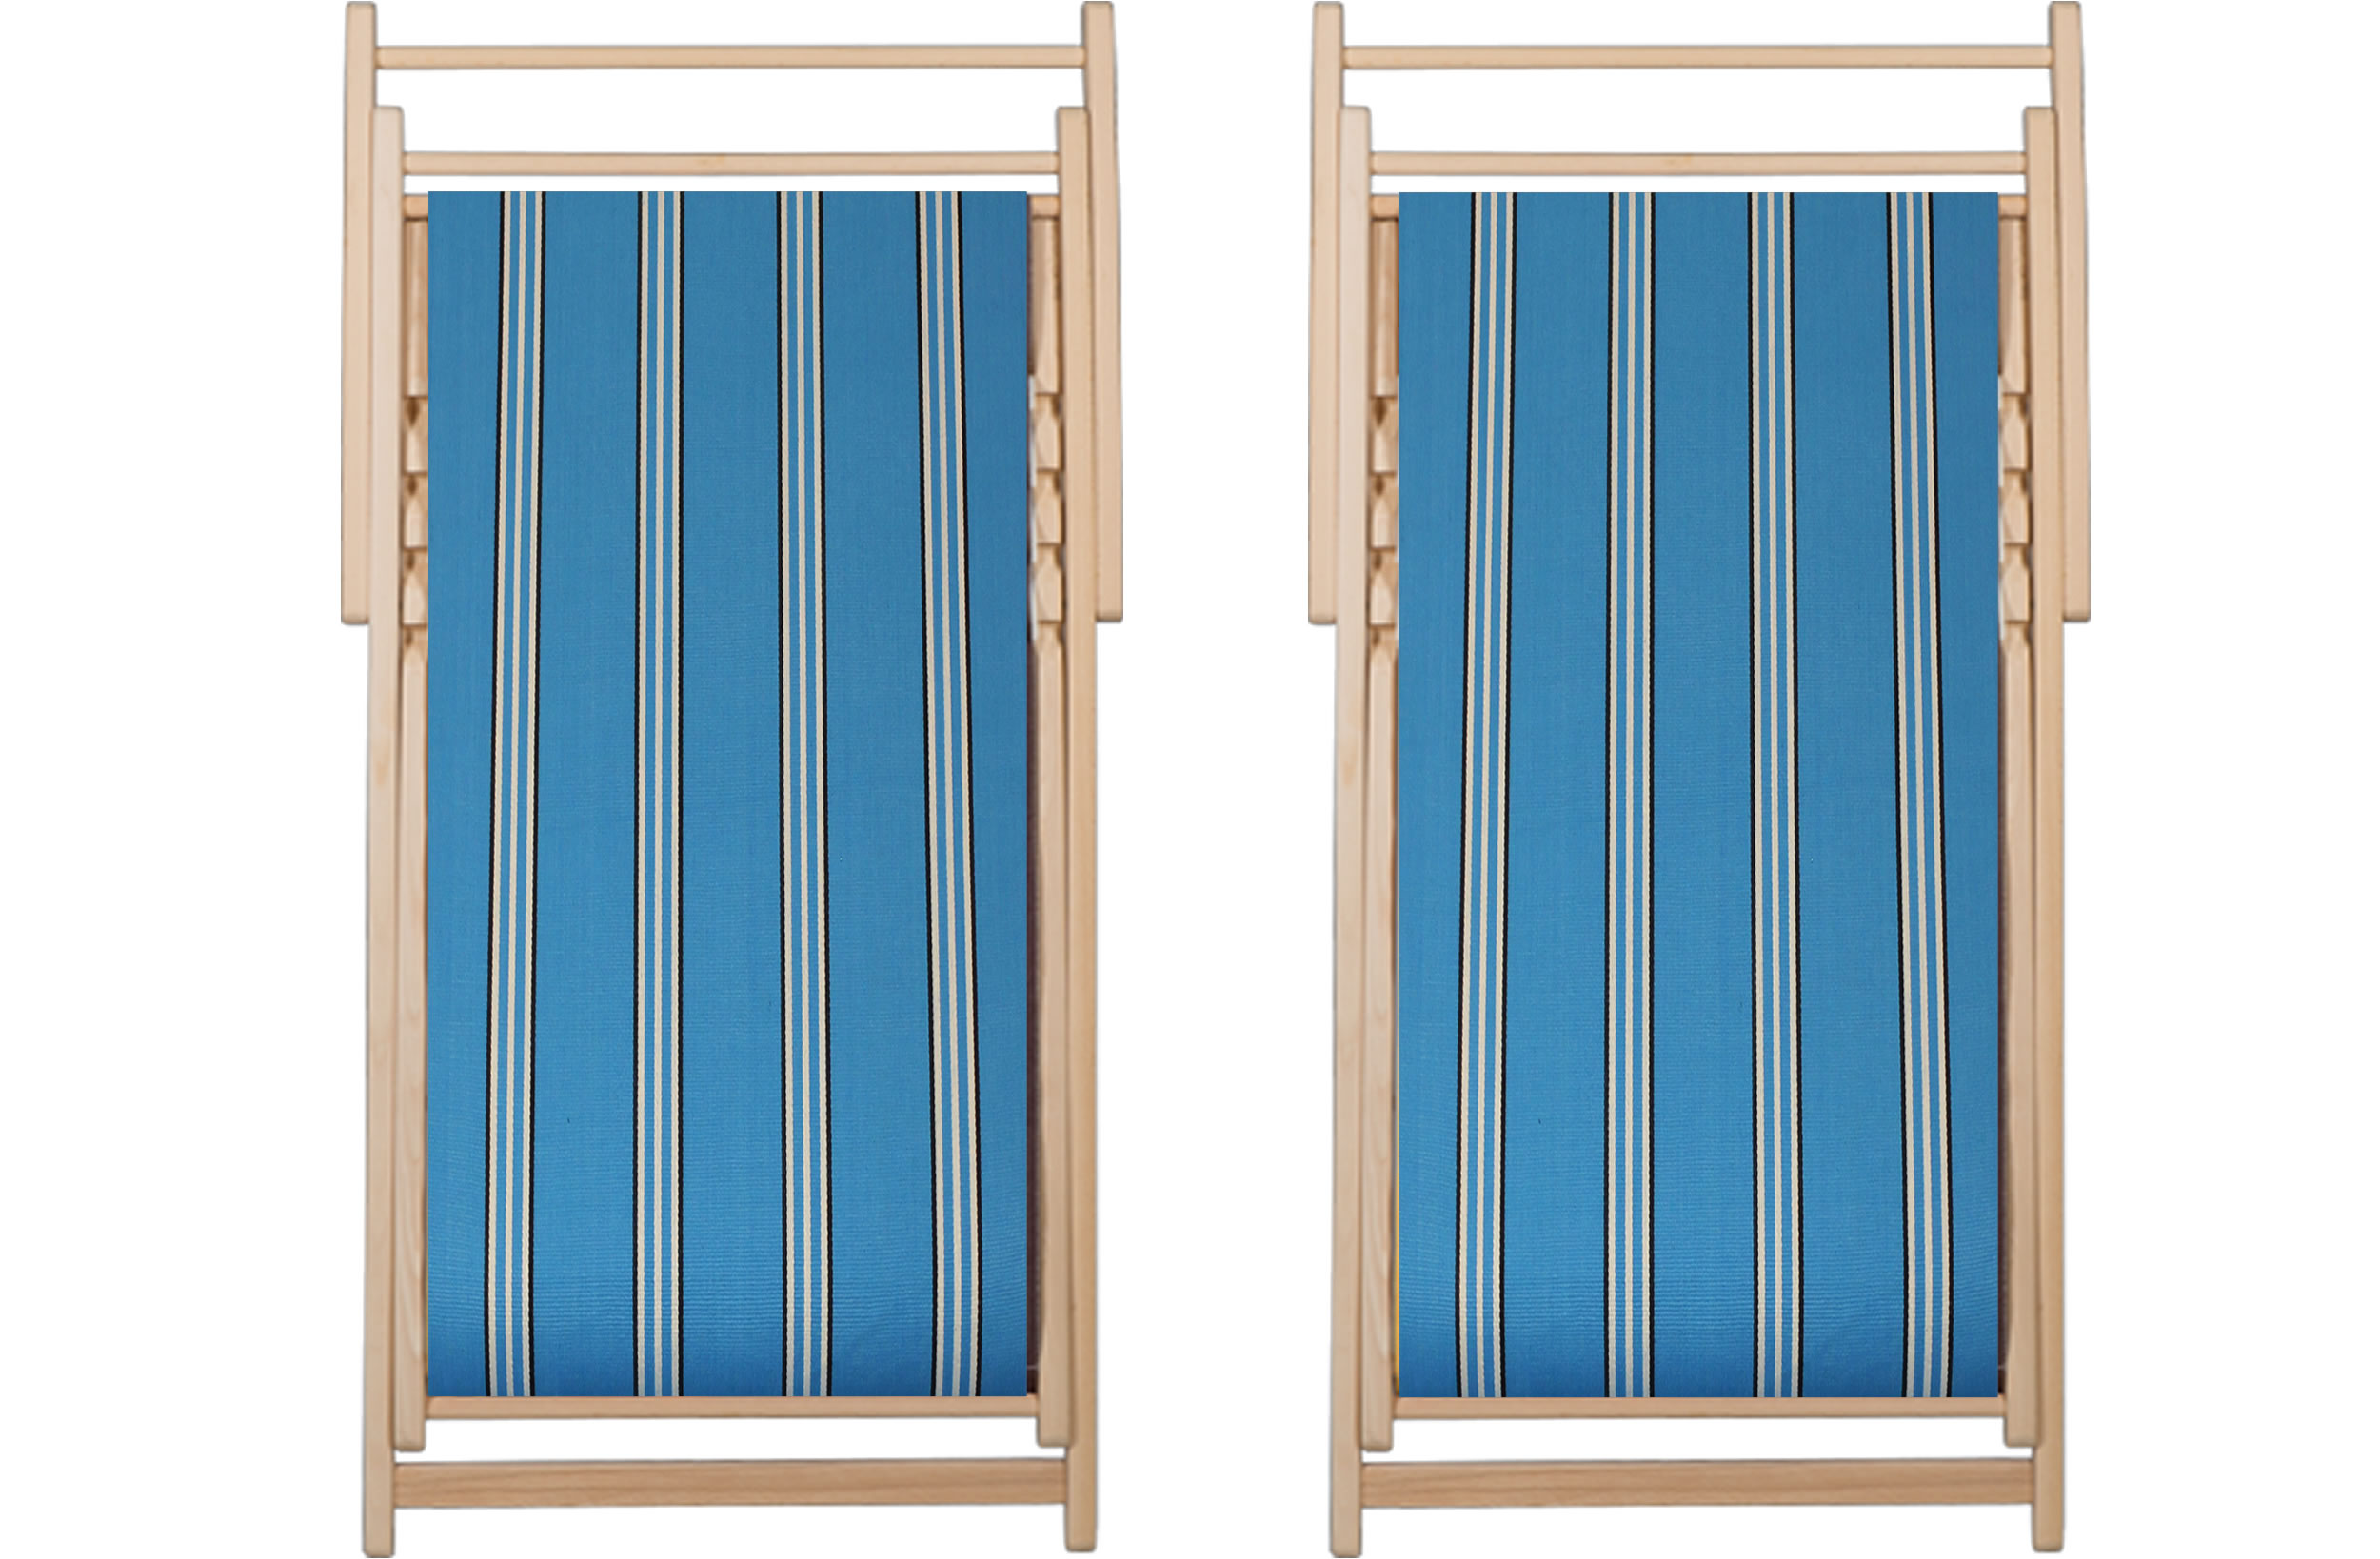 Turquoise Deckchairs | Wooden Folding Deck Chairs Fives Stripes